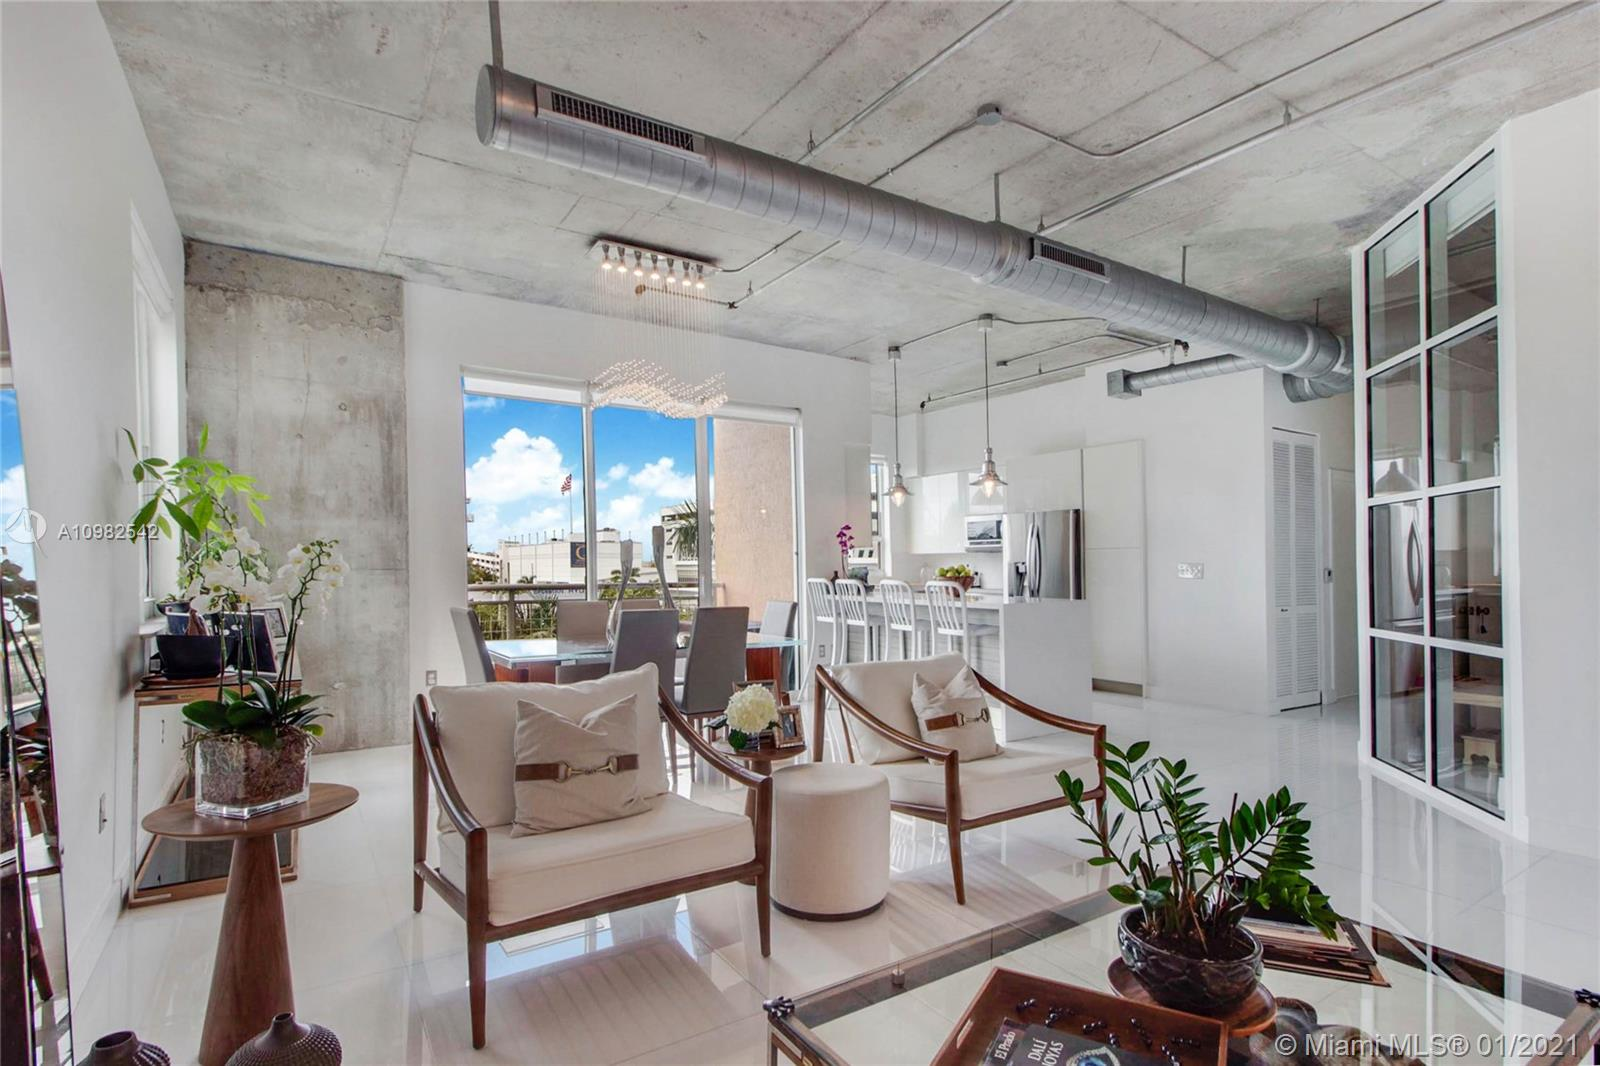 2001 Biscayne Blvd # 2420, Miami, Florida 33137, 3 Bedrooms Bedrooms, ,2 BathroomsBathrooms,Residential,For Sale,2001 Biscayne Blvd # 2420,A10982542